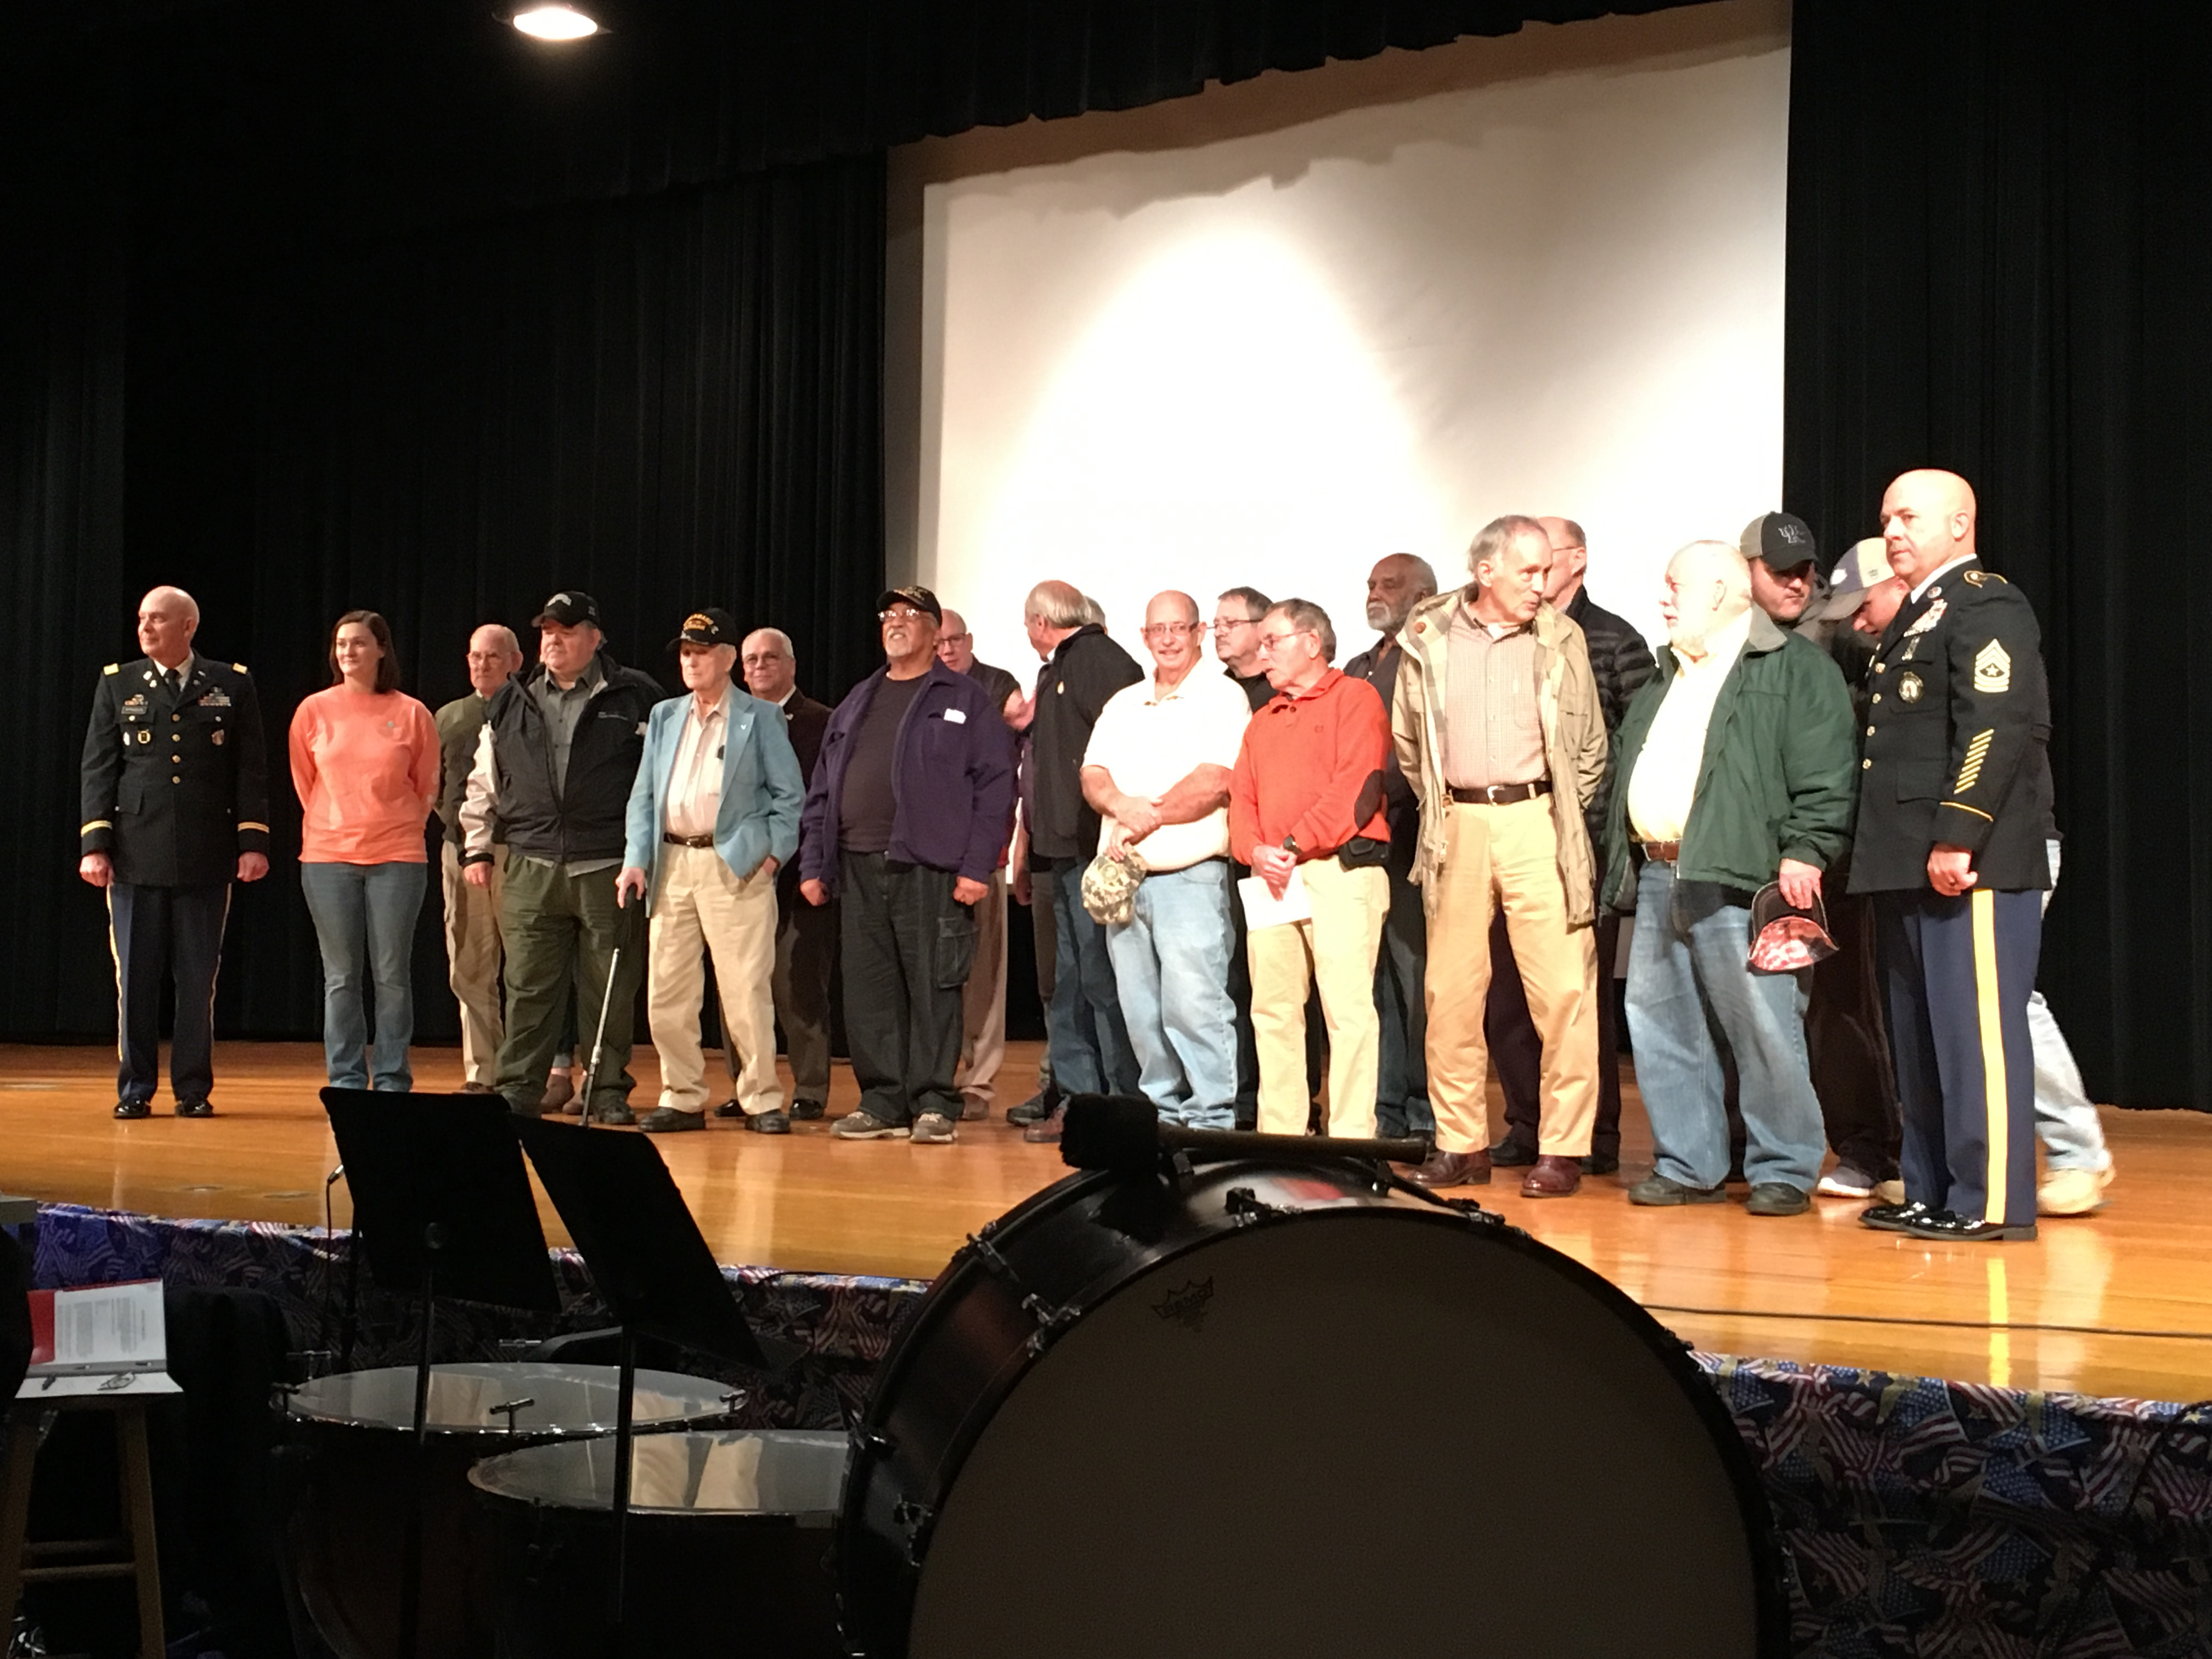 Veterans pose for a picture following the program at Central Arts Auditorium.